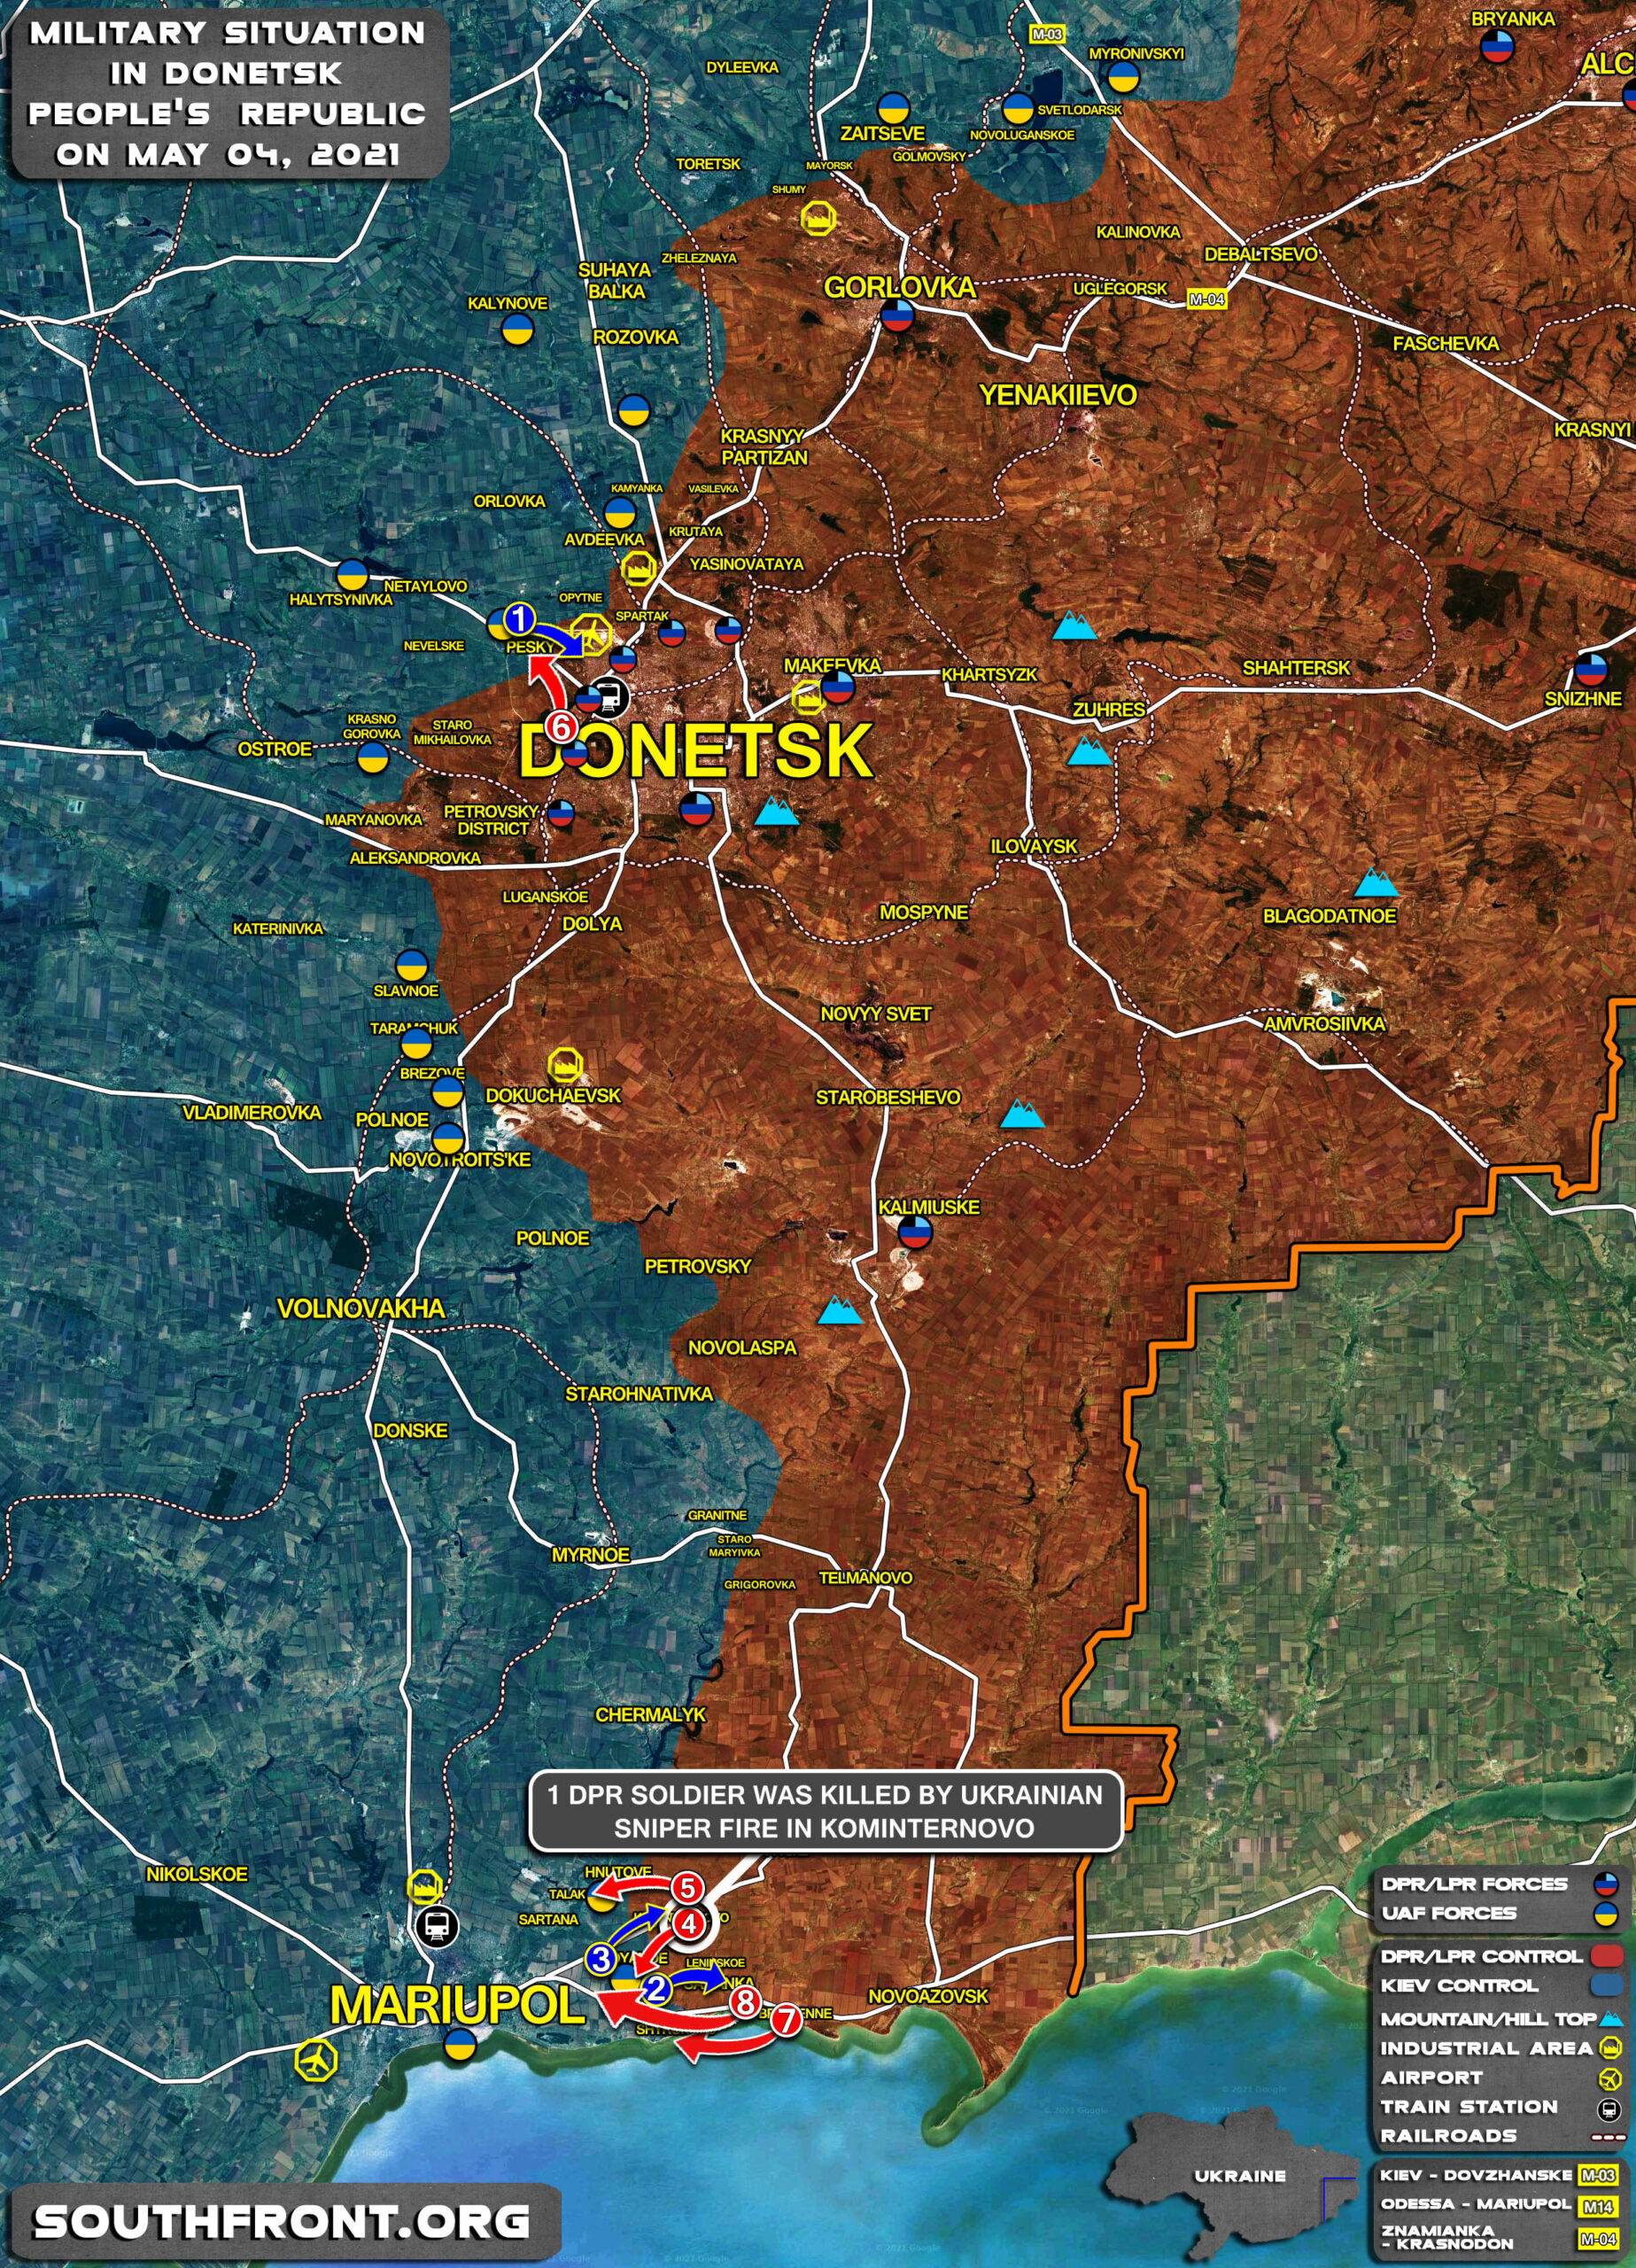 Military Situation In Donetsk People's Republic On May 4, 2021 (Map Update)